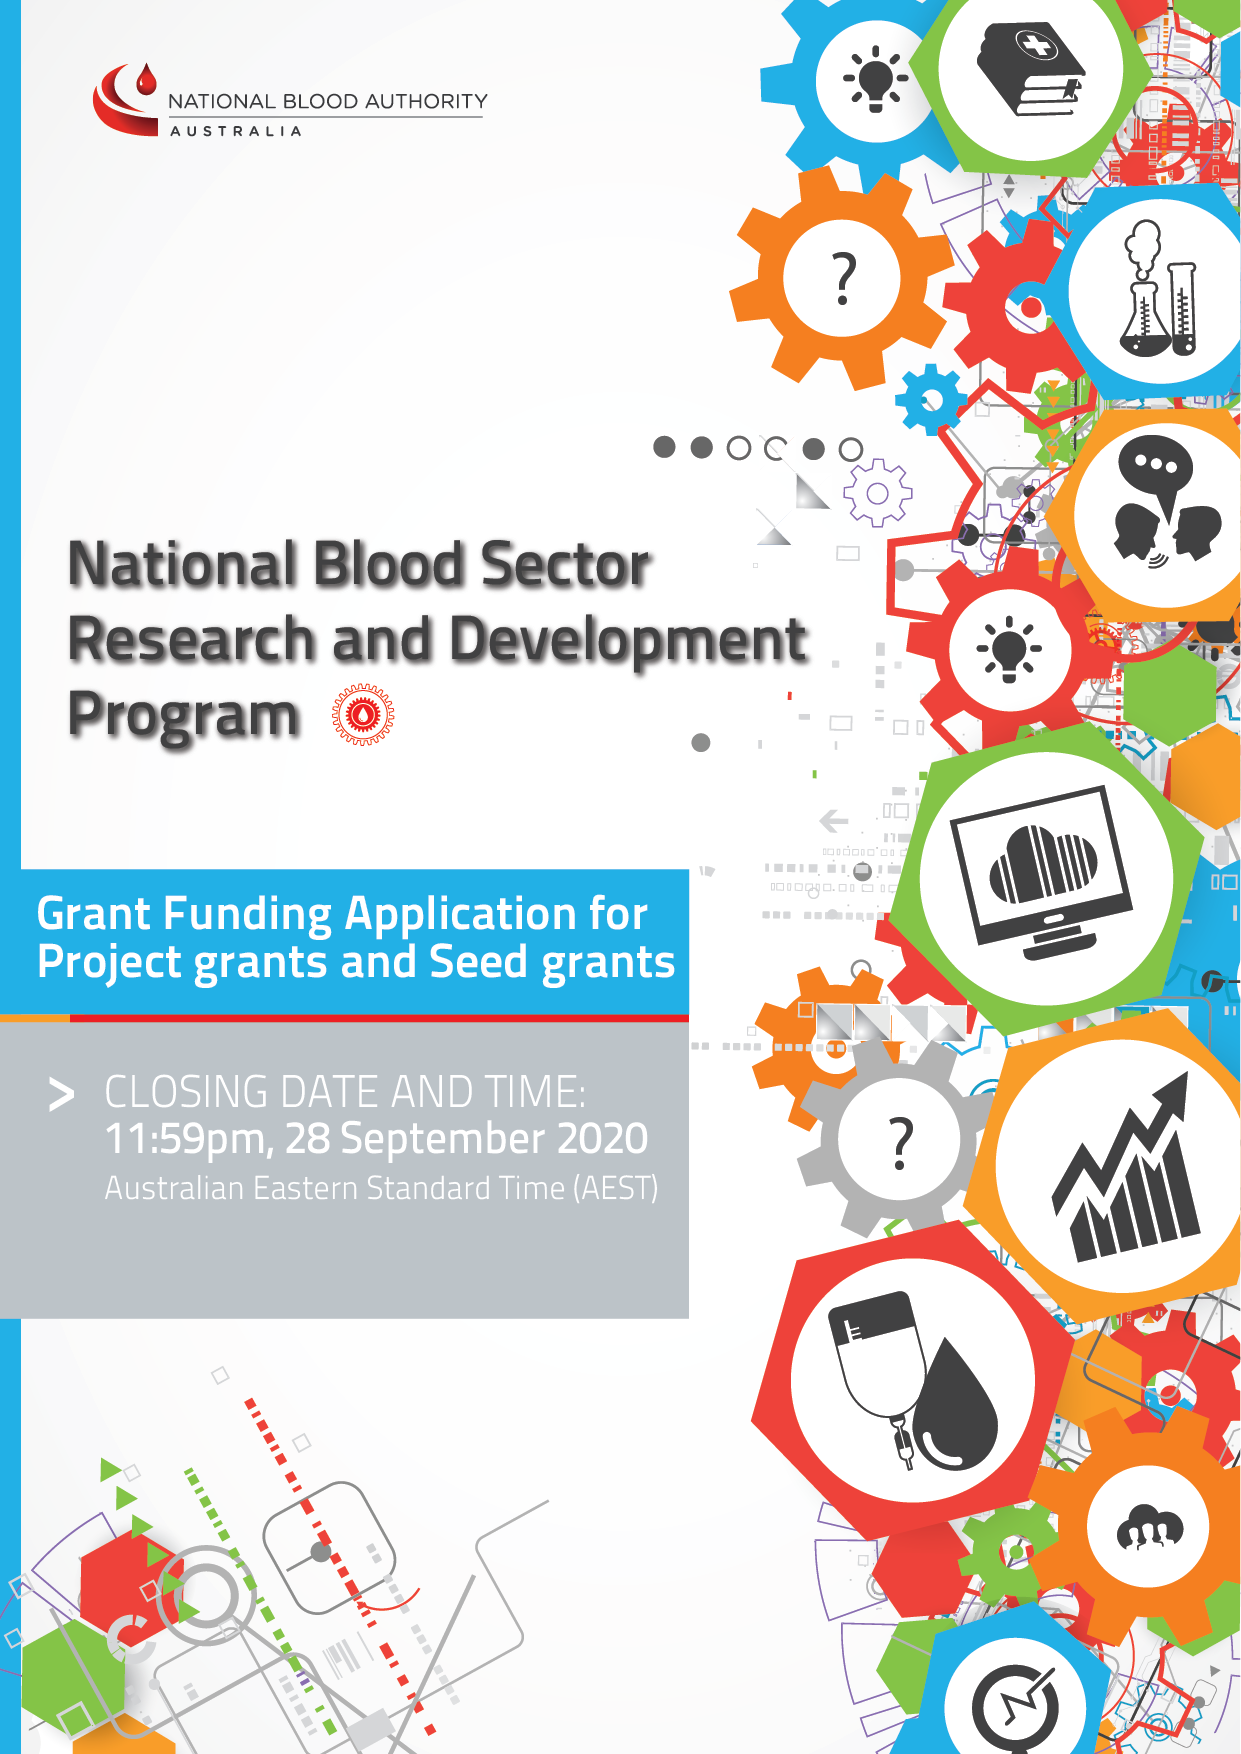 Application Form for Project and Seed Grants